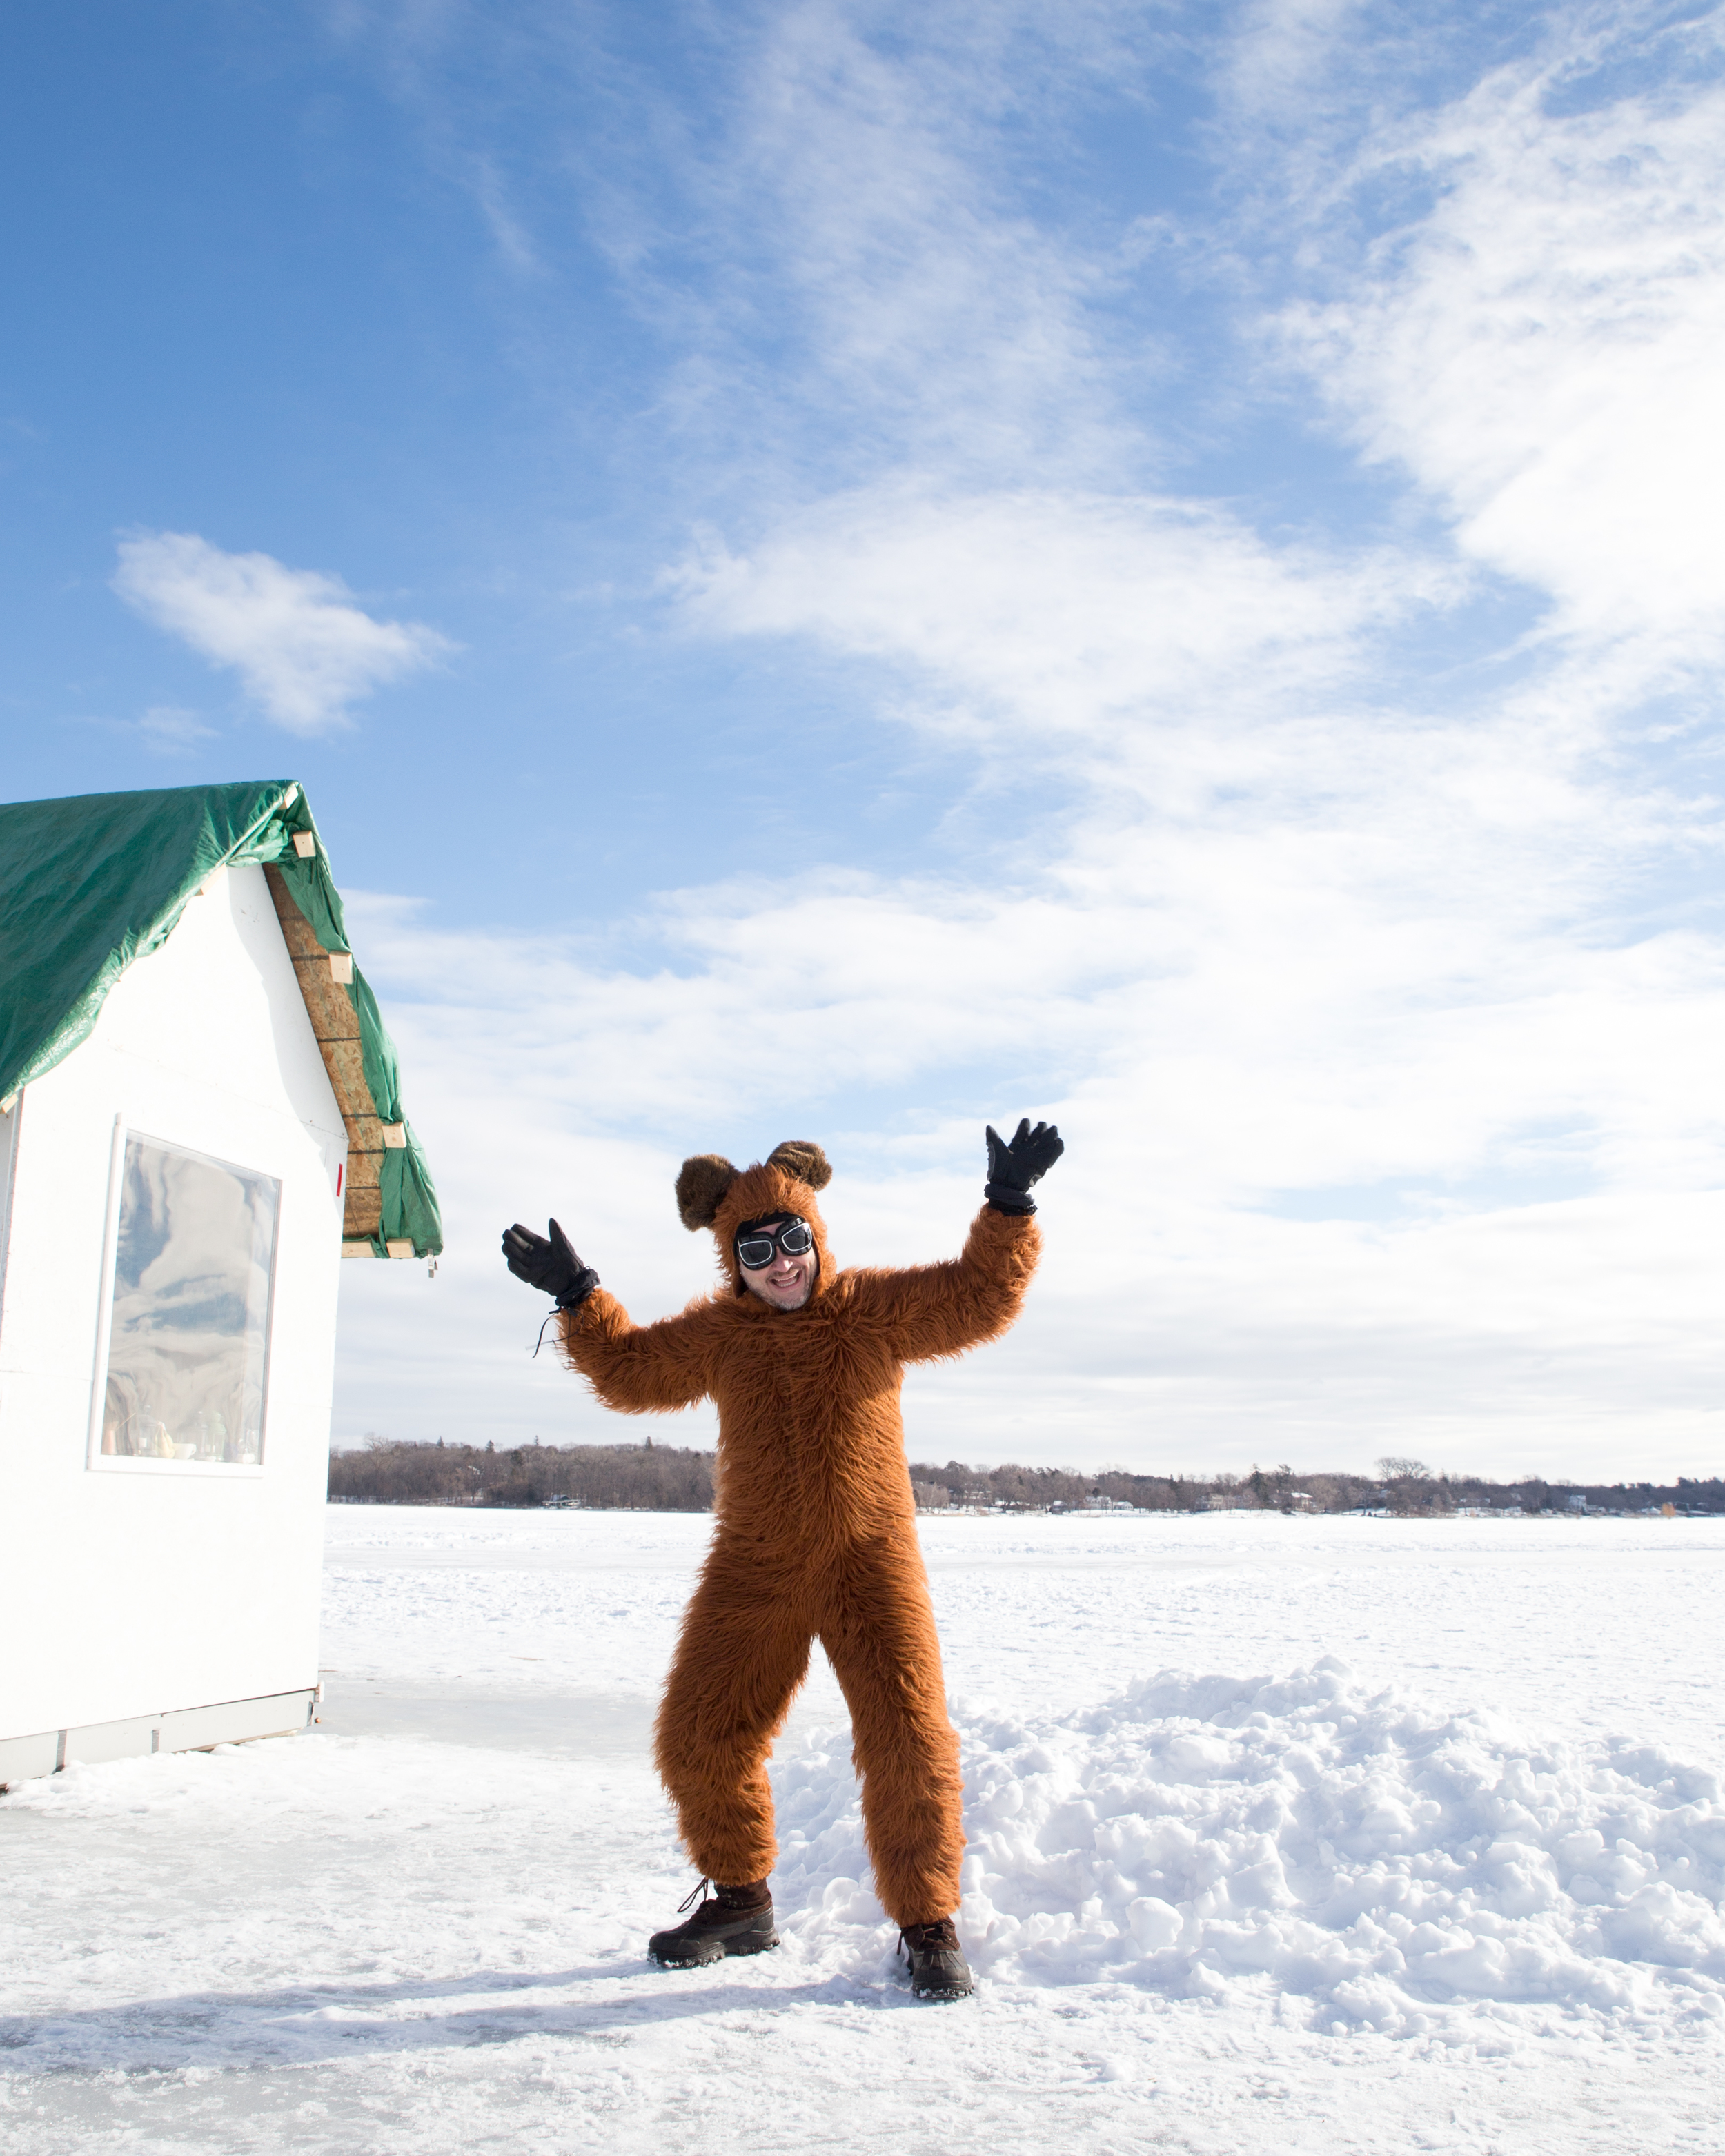 There's a teddy bear running around outside - as part of the Slumber Party Shanty